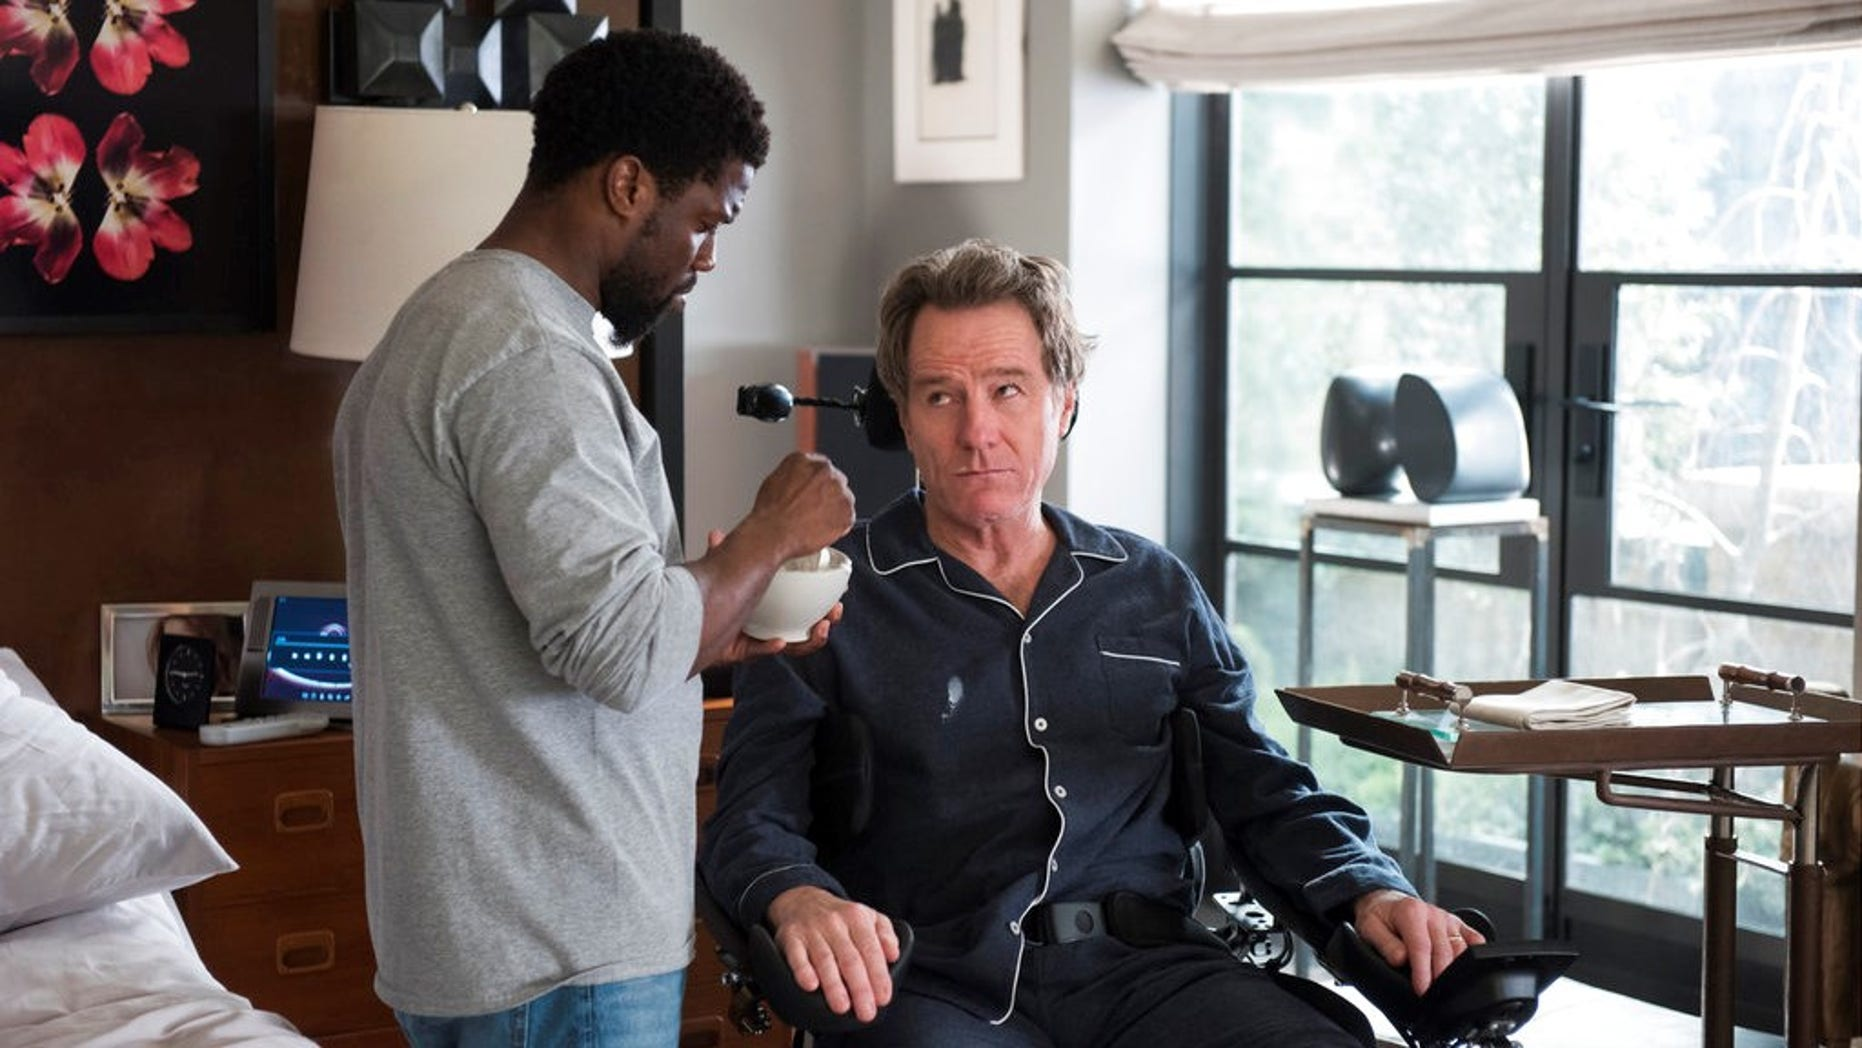 Bryan Cranston Defends Playing A Man With Disabilities In New Film 'Upside'